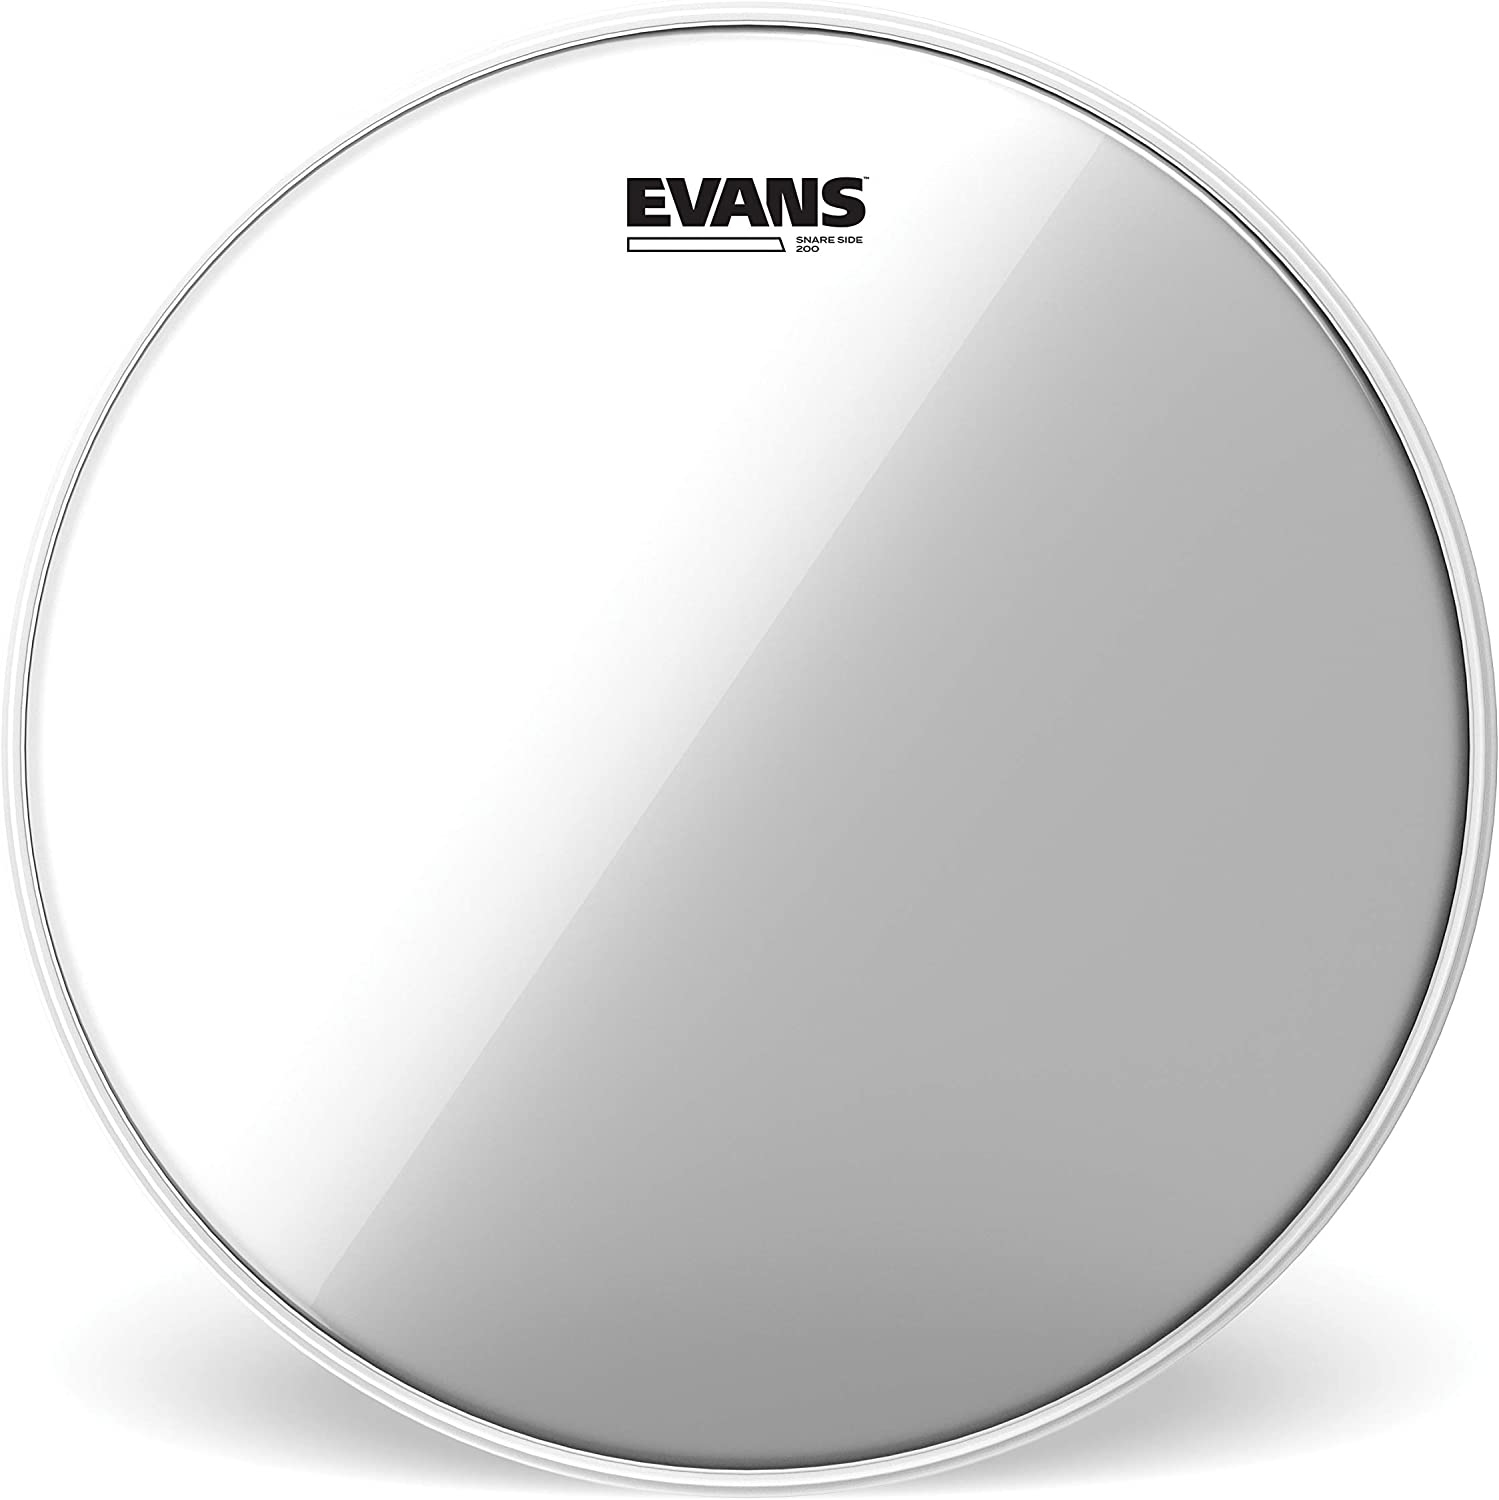 Evans Clear 200 Snare Side Drum Head, 10 Inch 71xy9WFJzvL